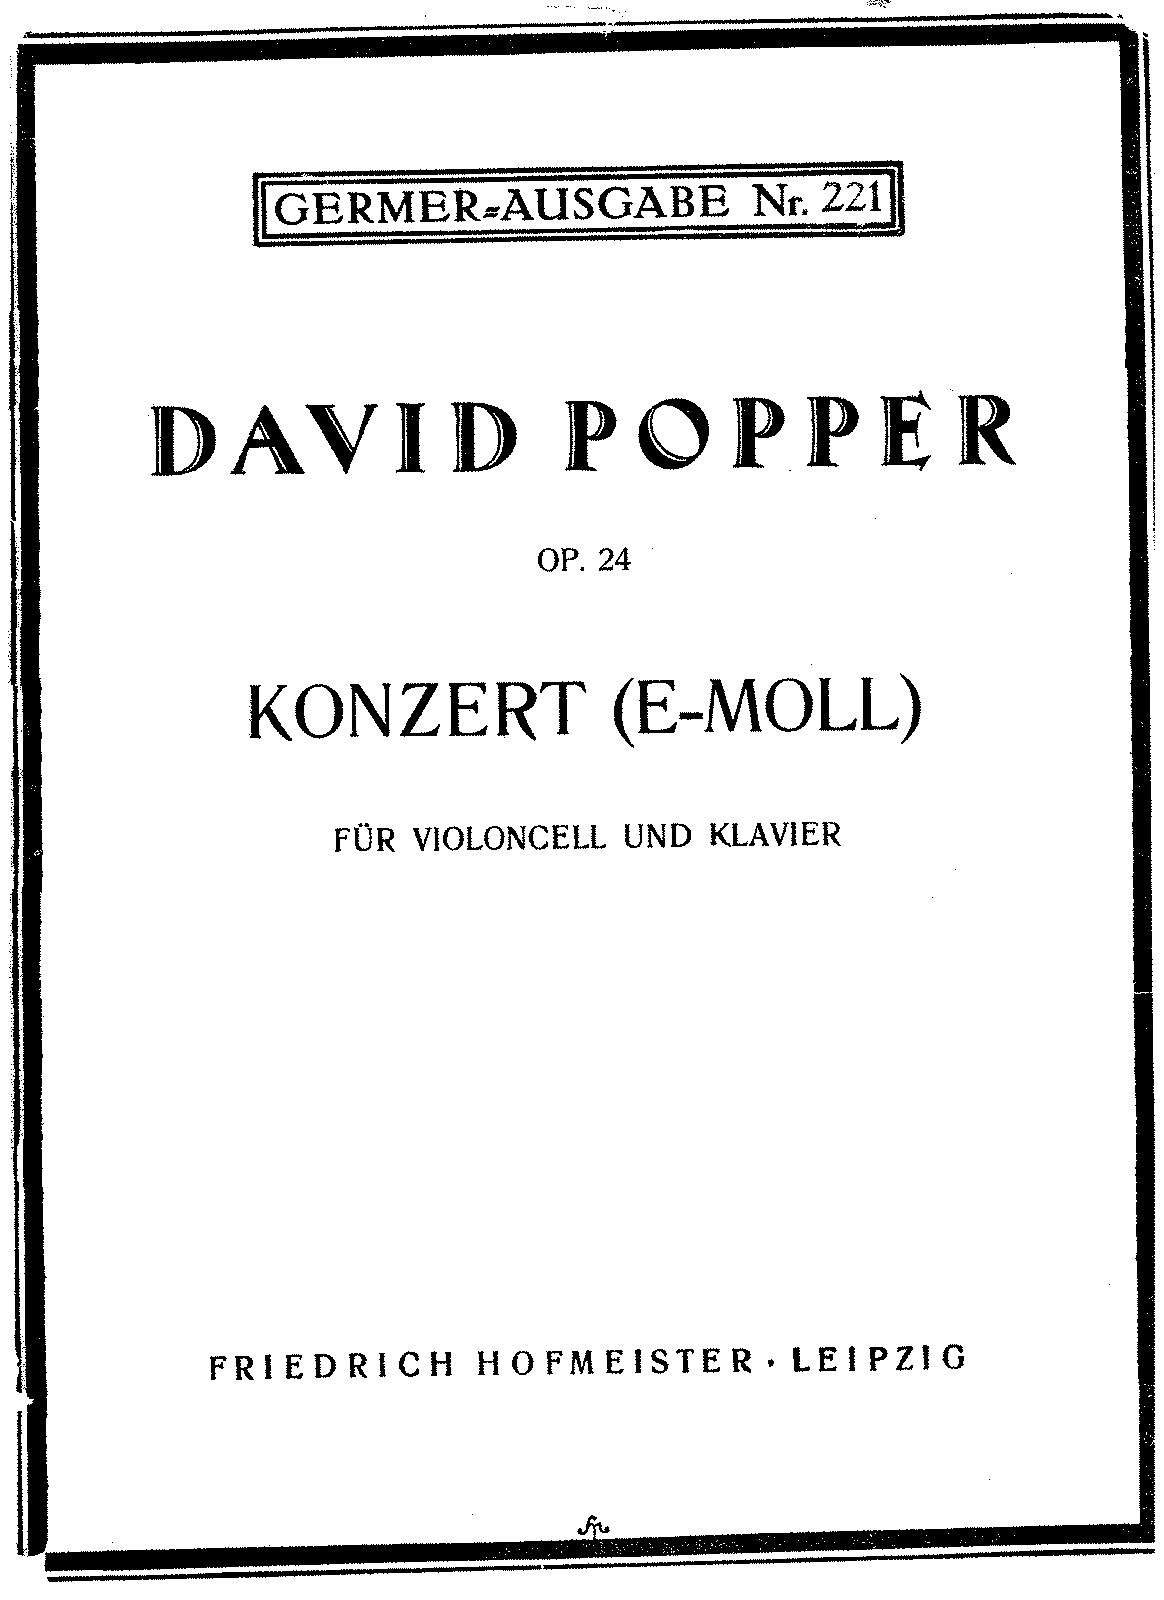 PMLP49722-Popper - Cello Concerto in E minor Op.24 piano part clean.pdf